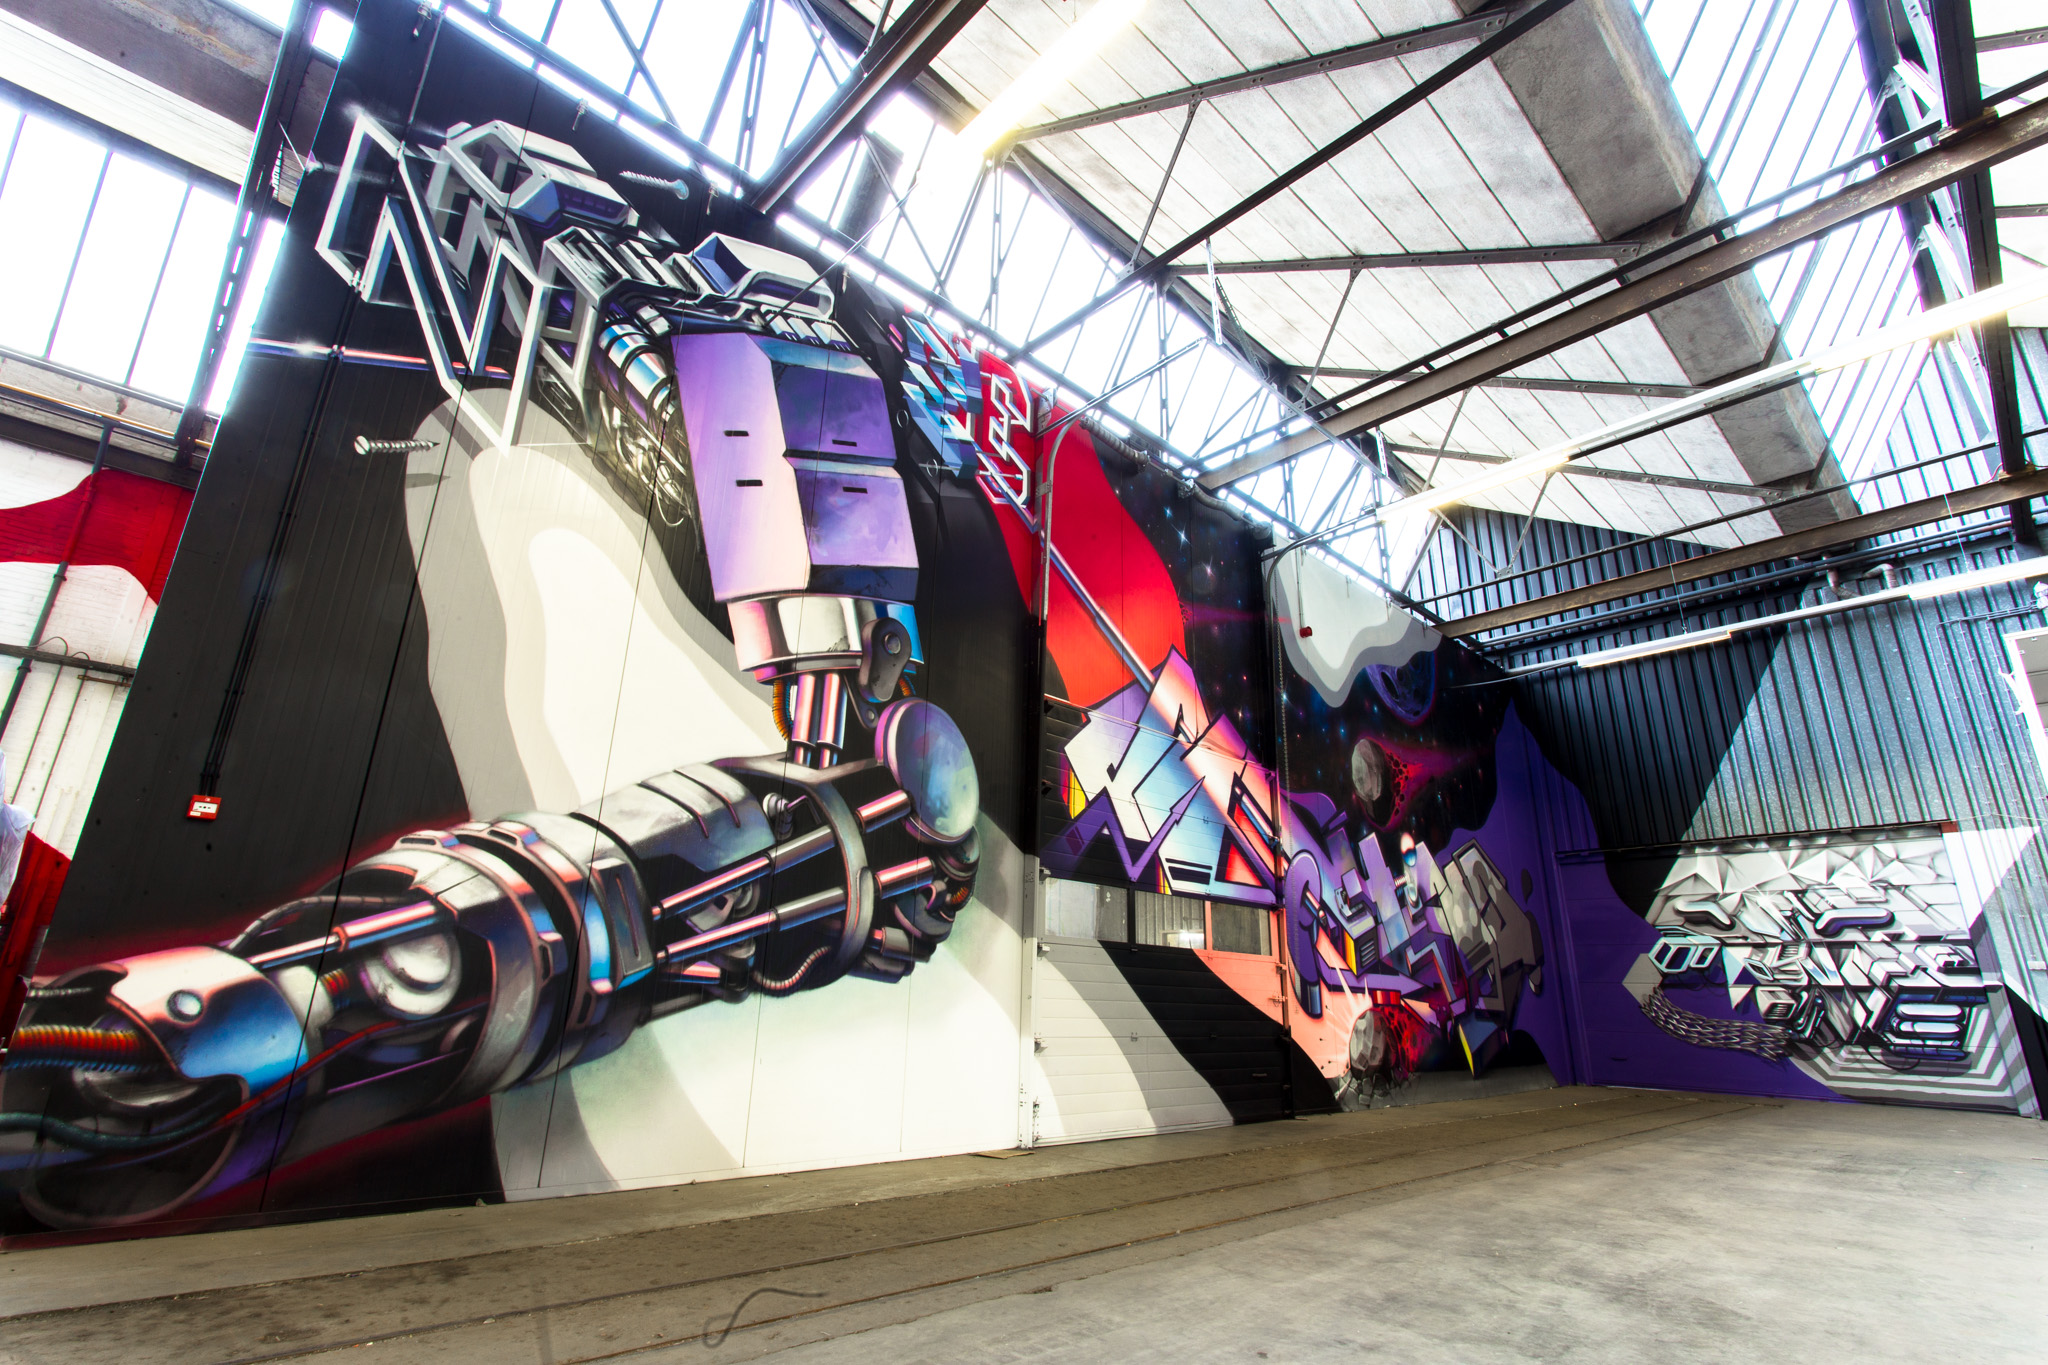 A work by Does - Warehouse eygelshoven the netherlands 2